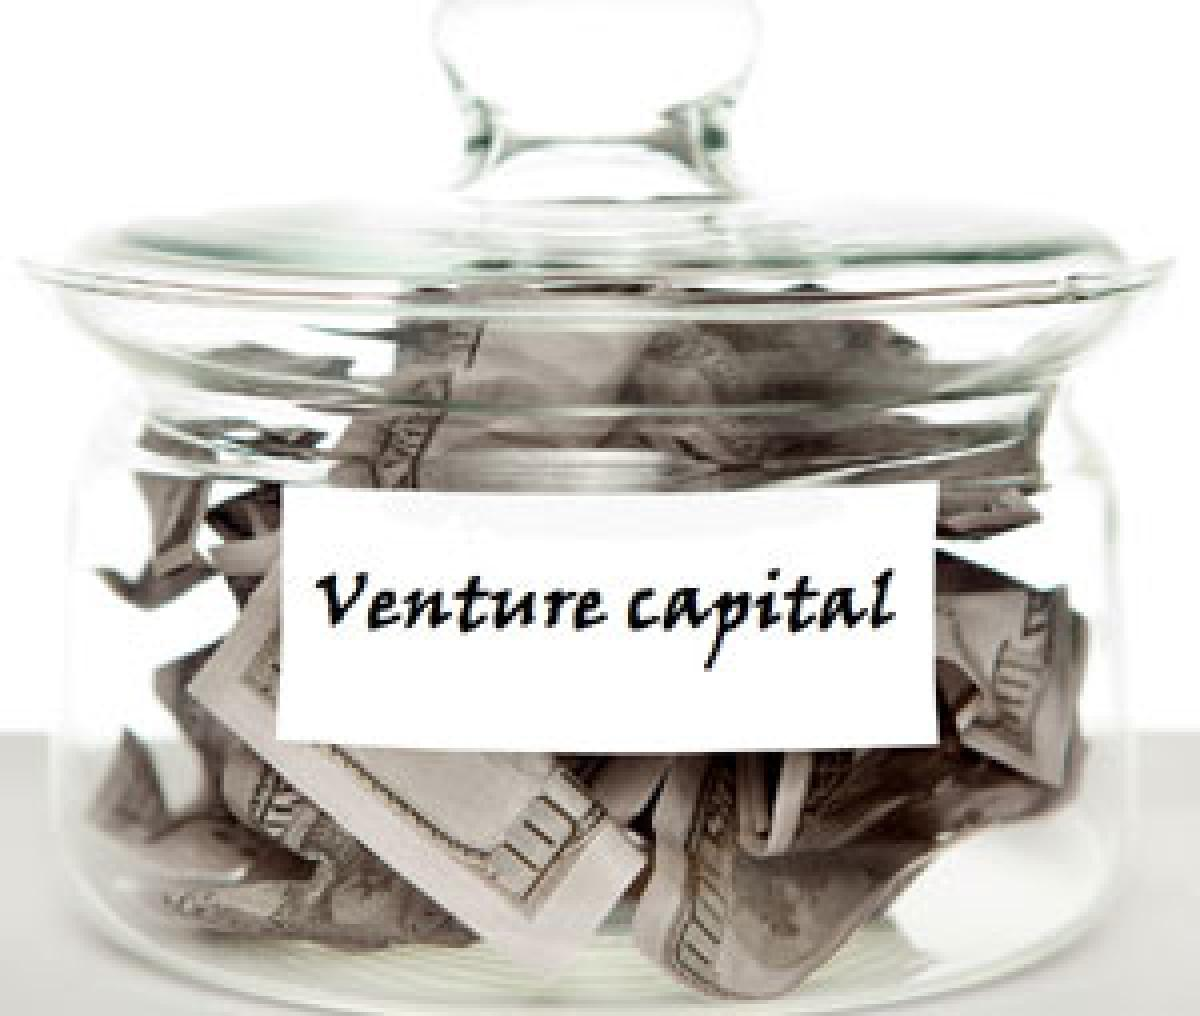 Lack of VCs may hit TS startup plans